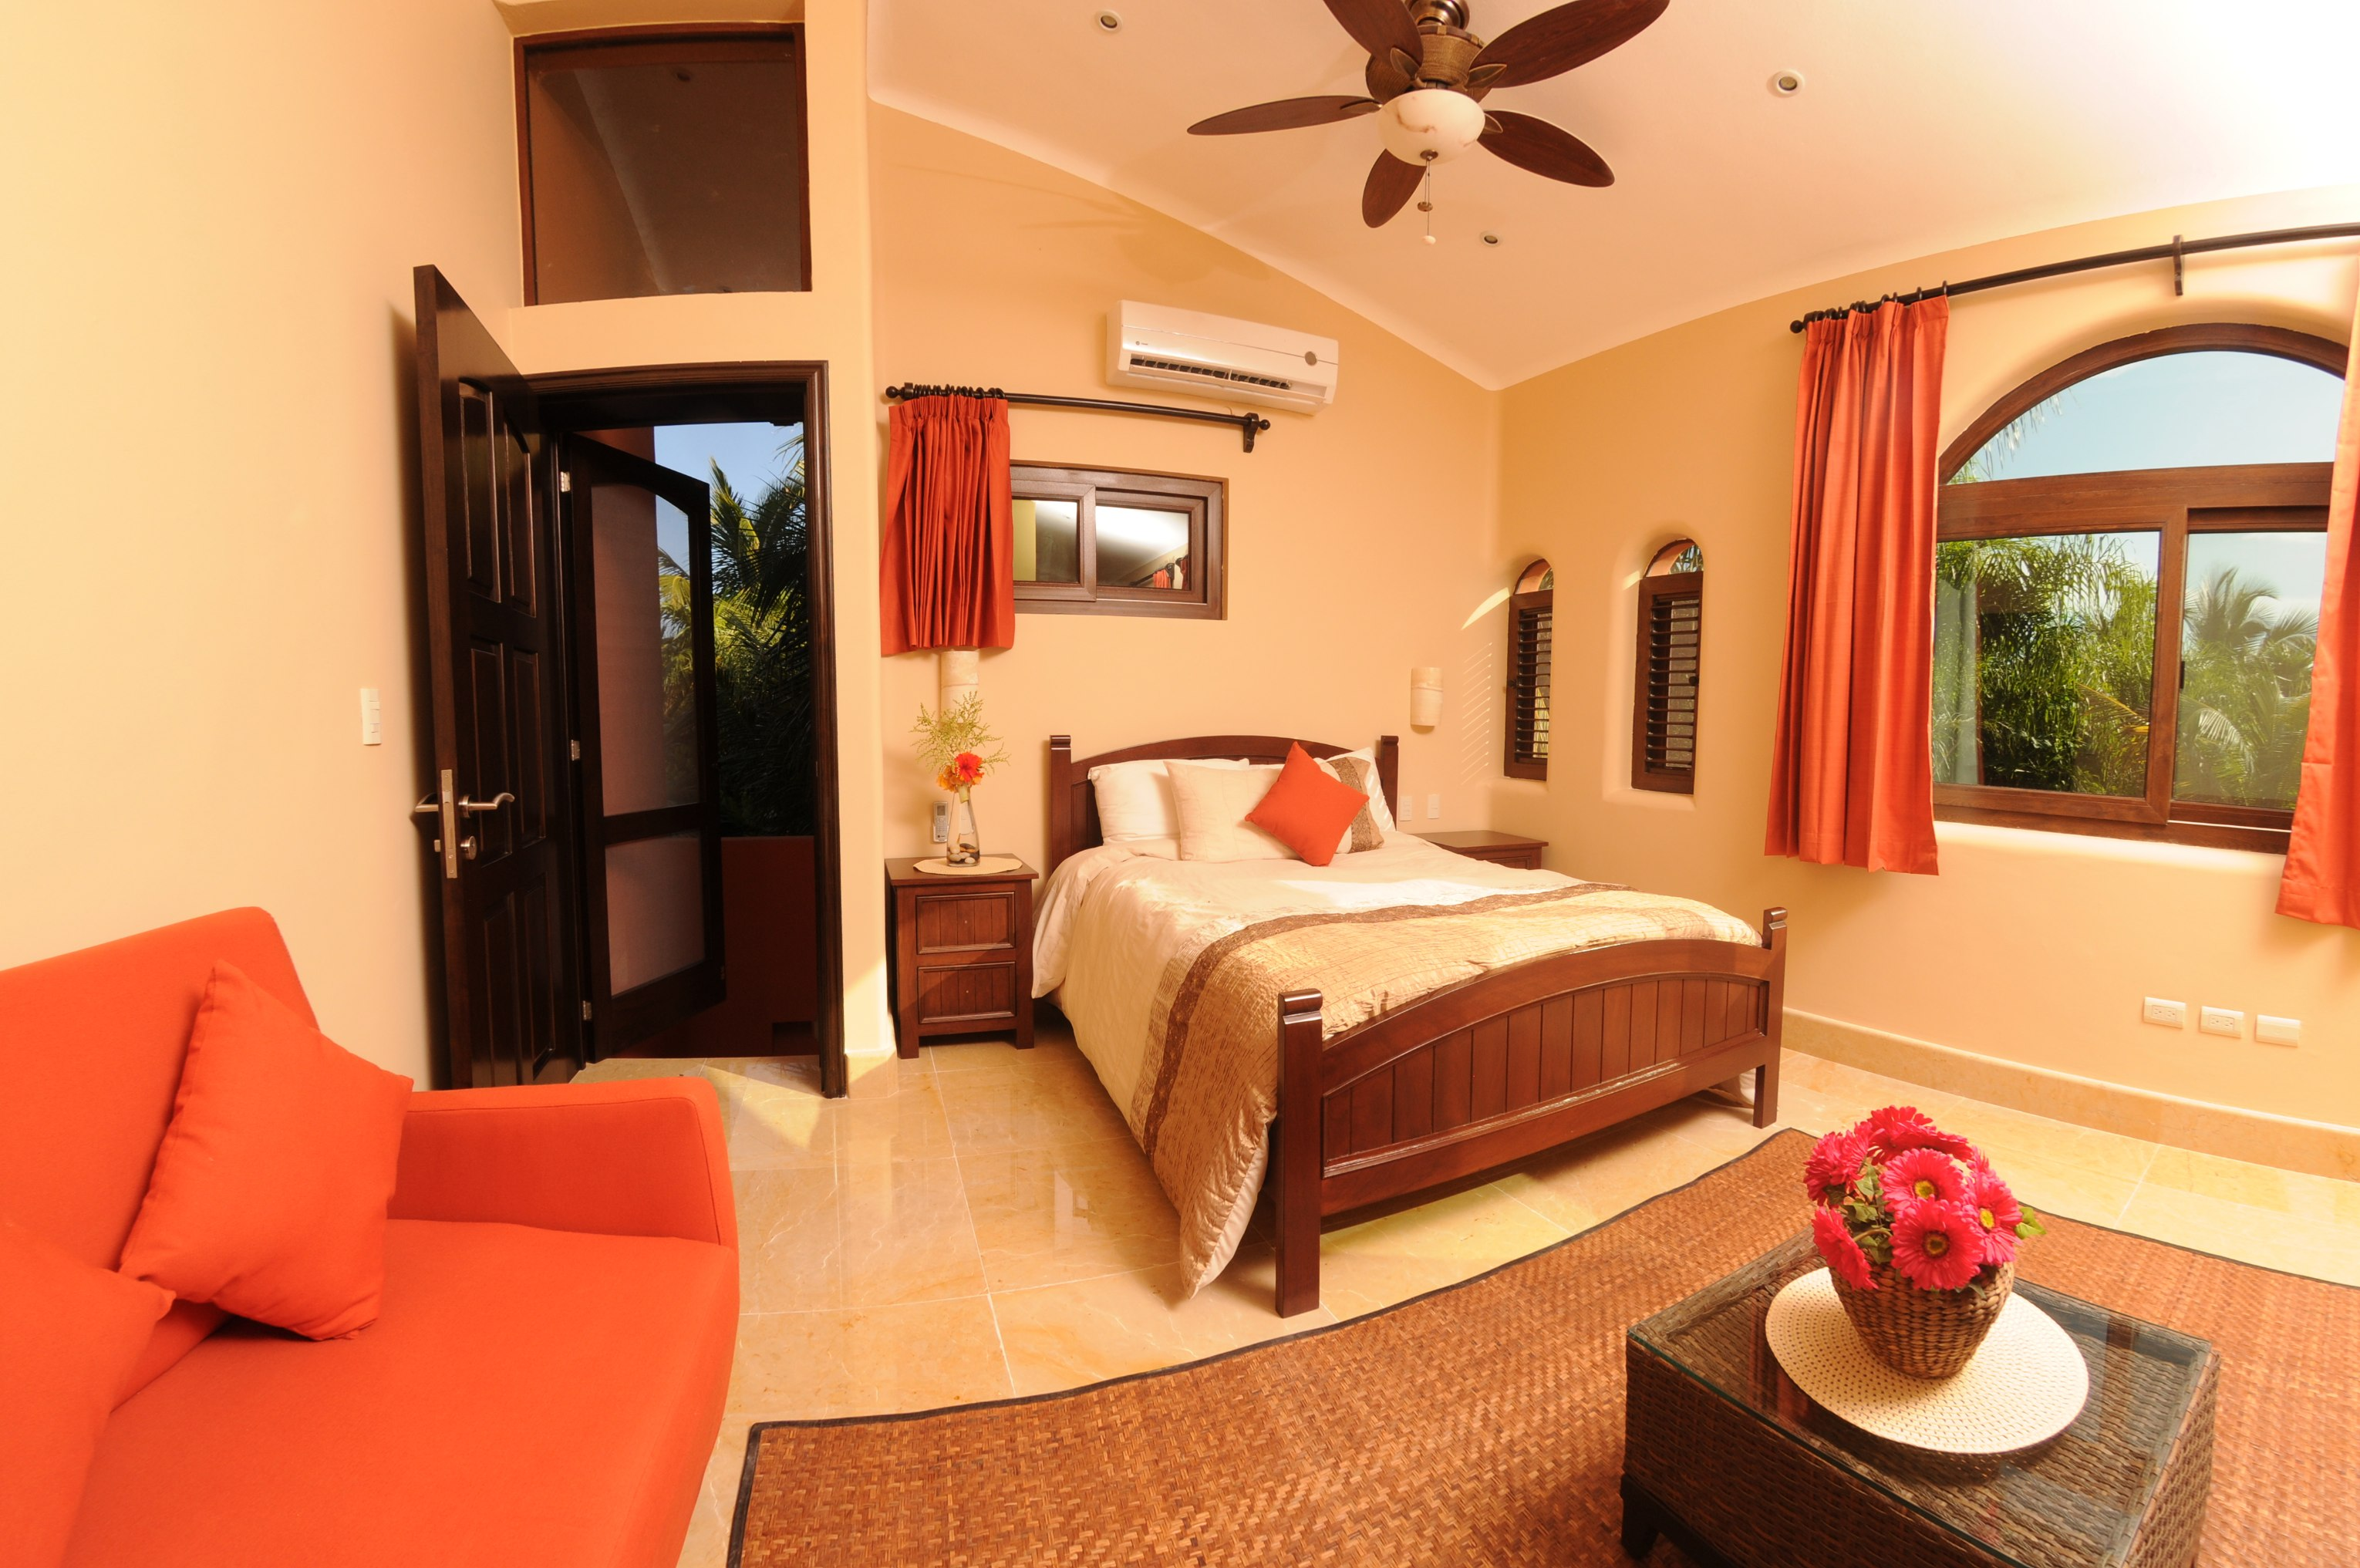 BedroomGuestHouse01